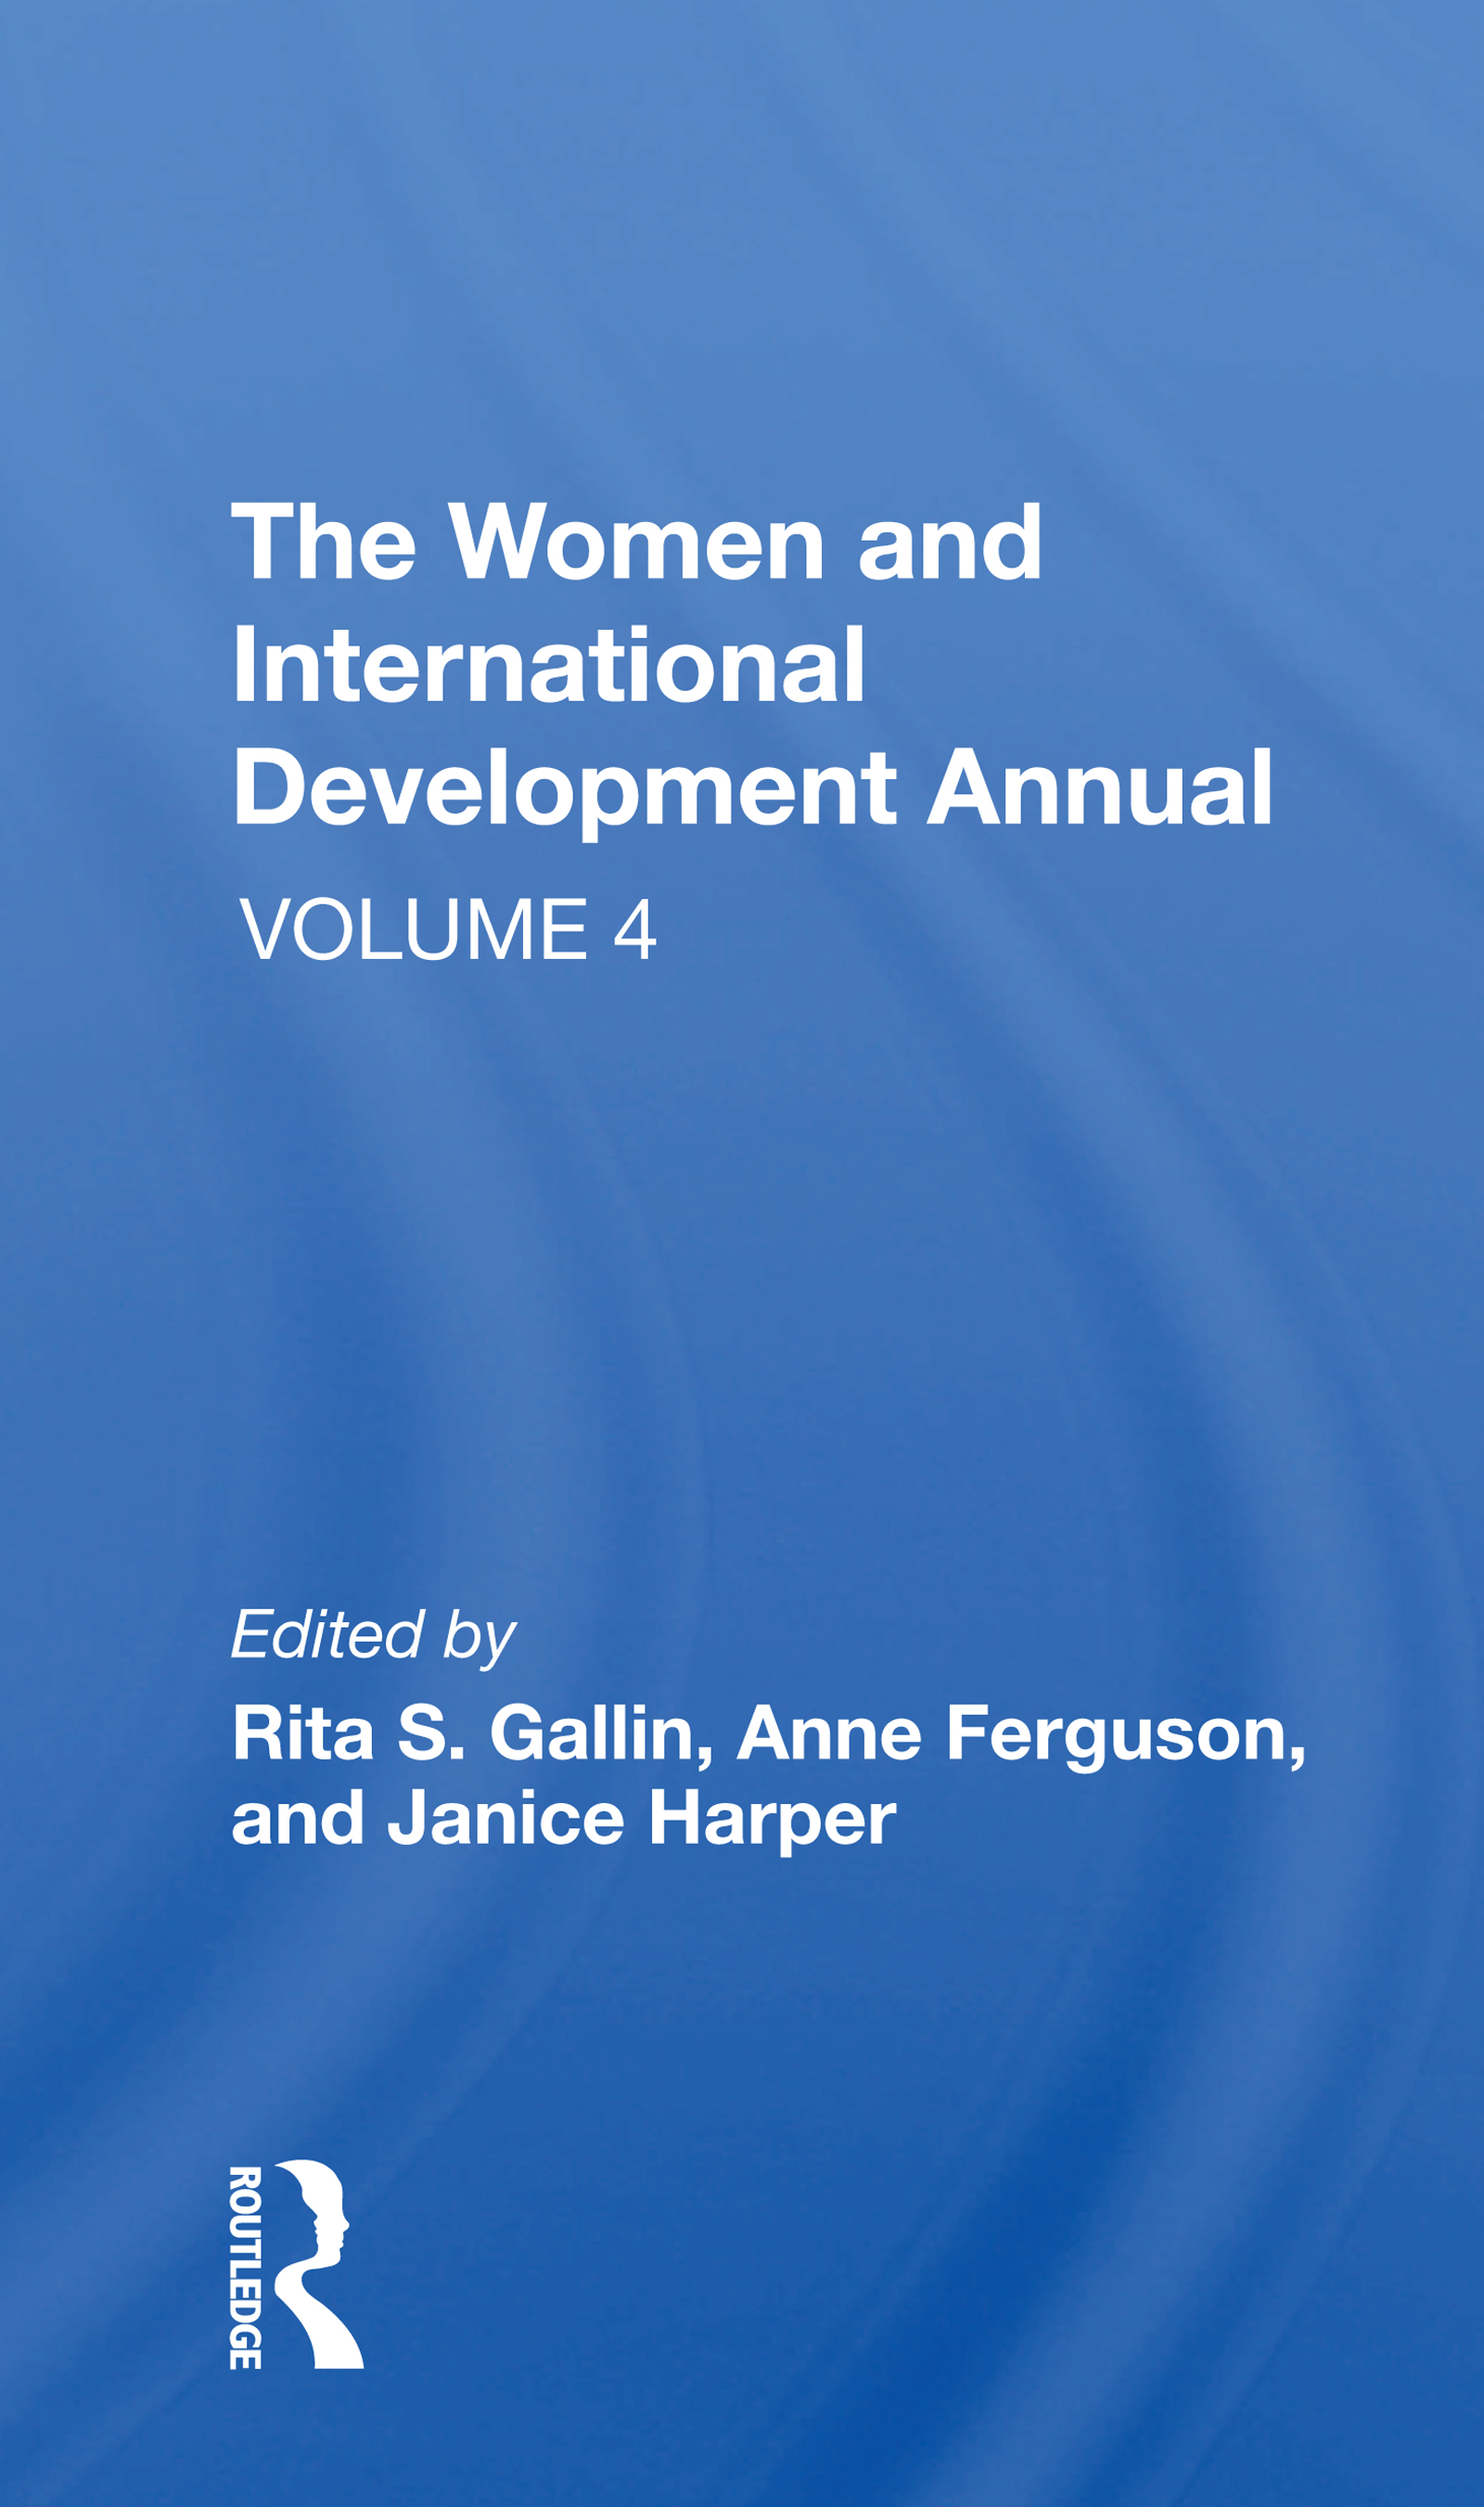 The Women and International Development Annual